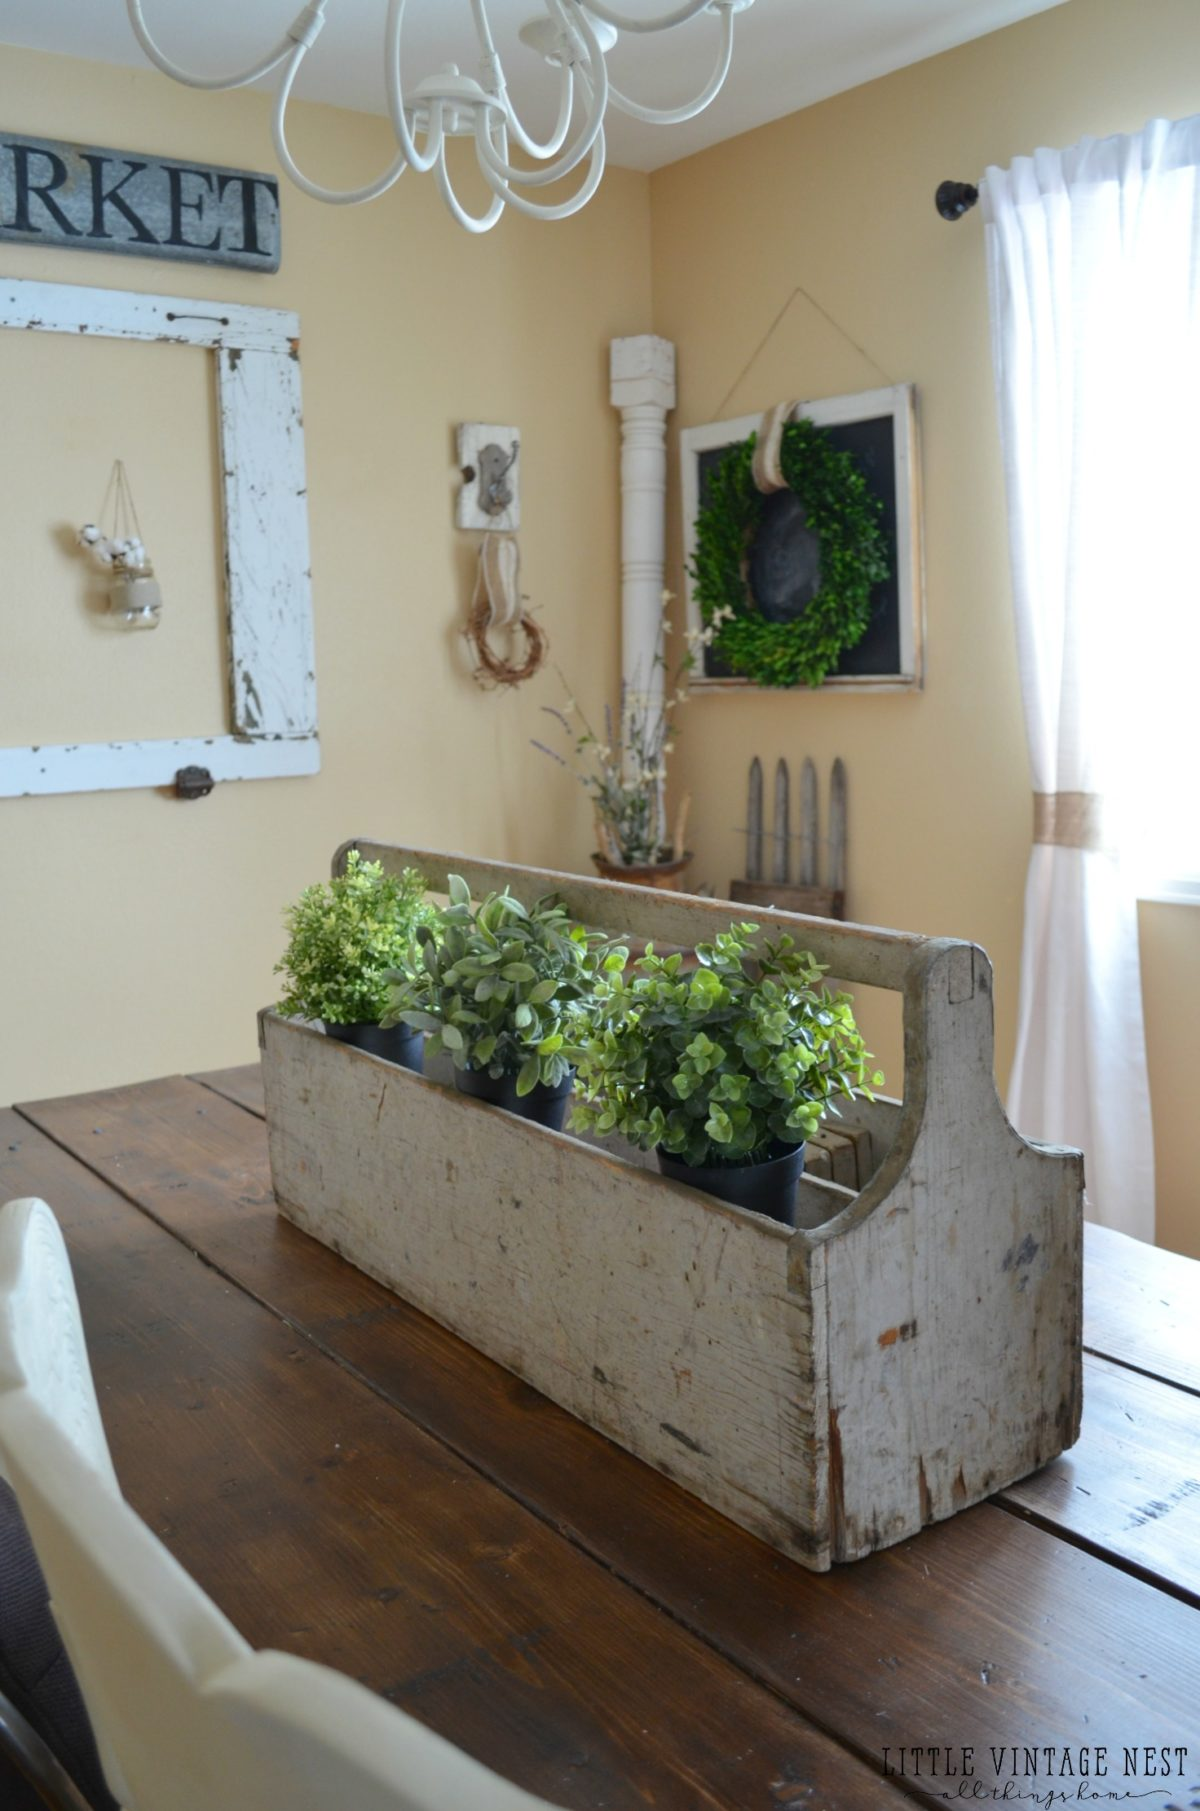 Decorating with Vintage Decor::Vintage Toolbox as Centerpiece